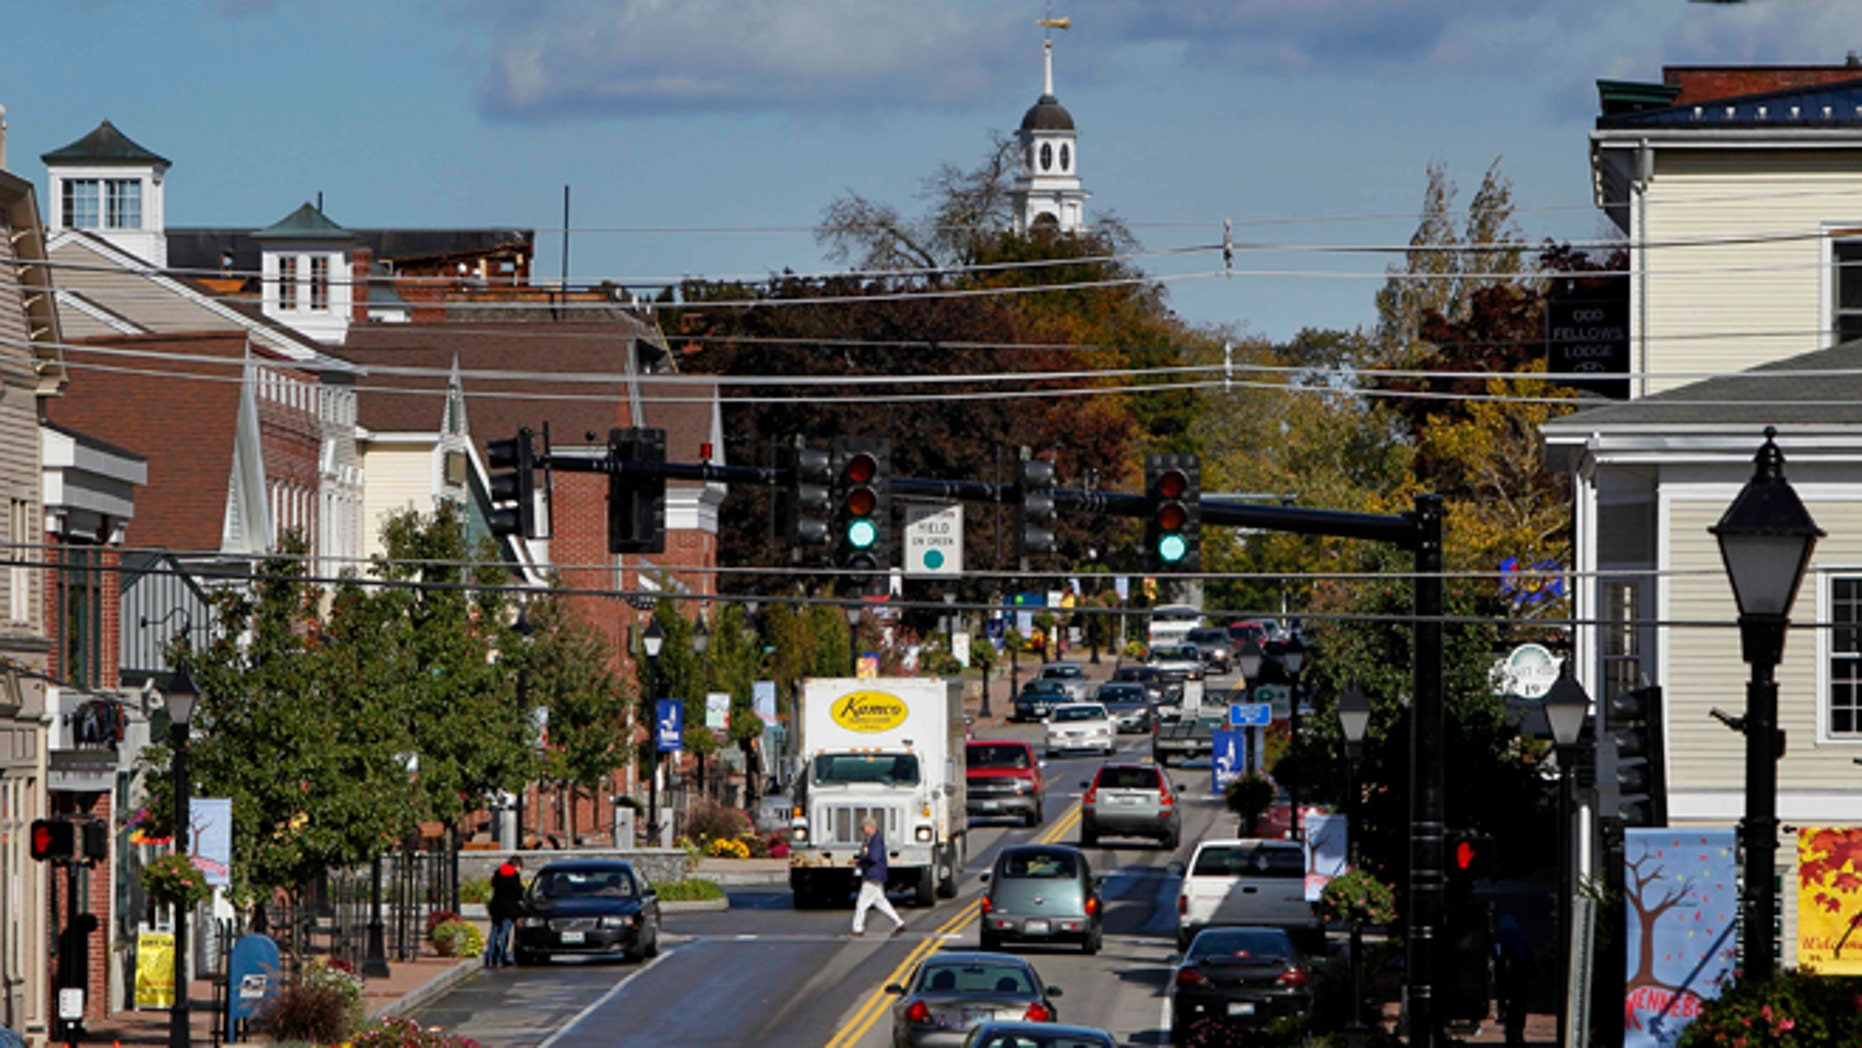 Oct. 12, 2012: A pedestrian crosses Route 1 in downtown Kennebunk, Maine.